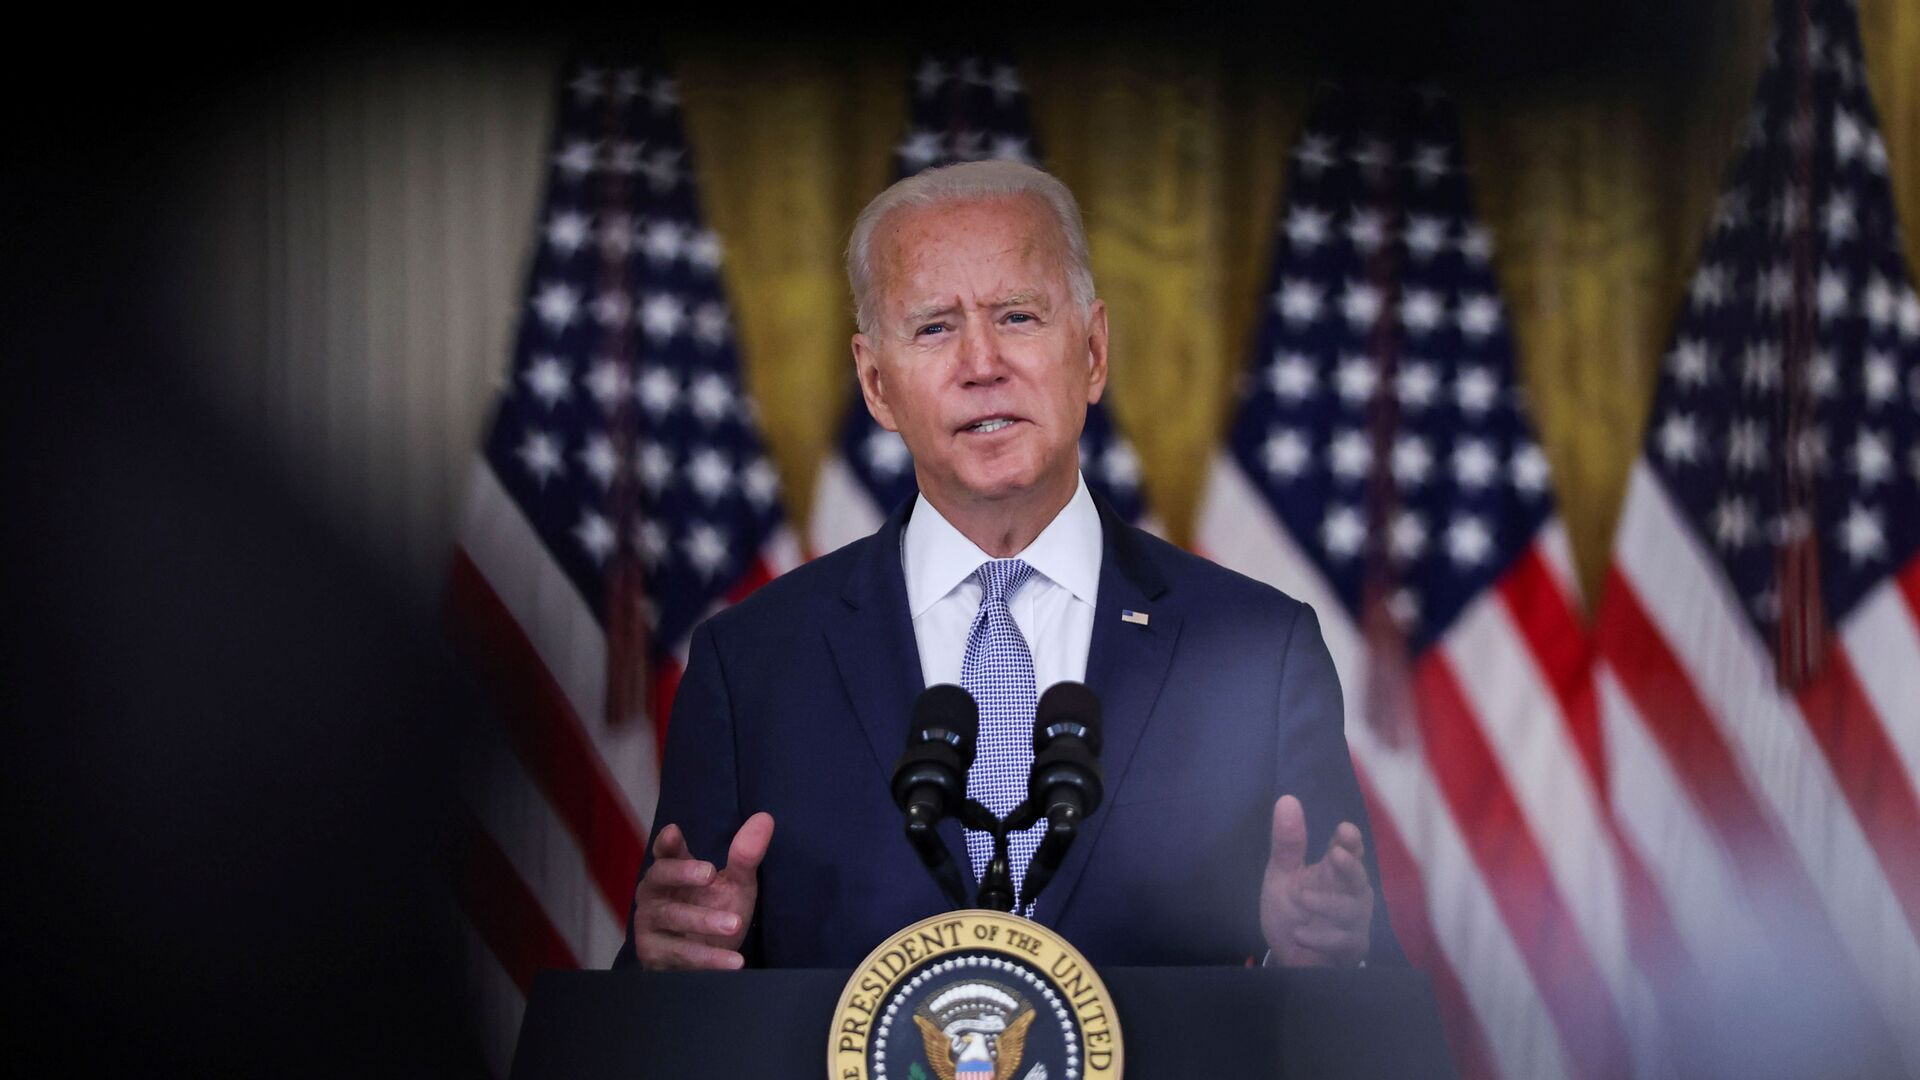 U.S. President Joe Biden discusses his 'Build Back Better' agenda and administration efforts to lower prescription drug prices during a speech in the East Room at the White House in Washington, U.S., August 12, 2021 - Sputnik France, 1920, 21.09.2021